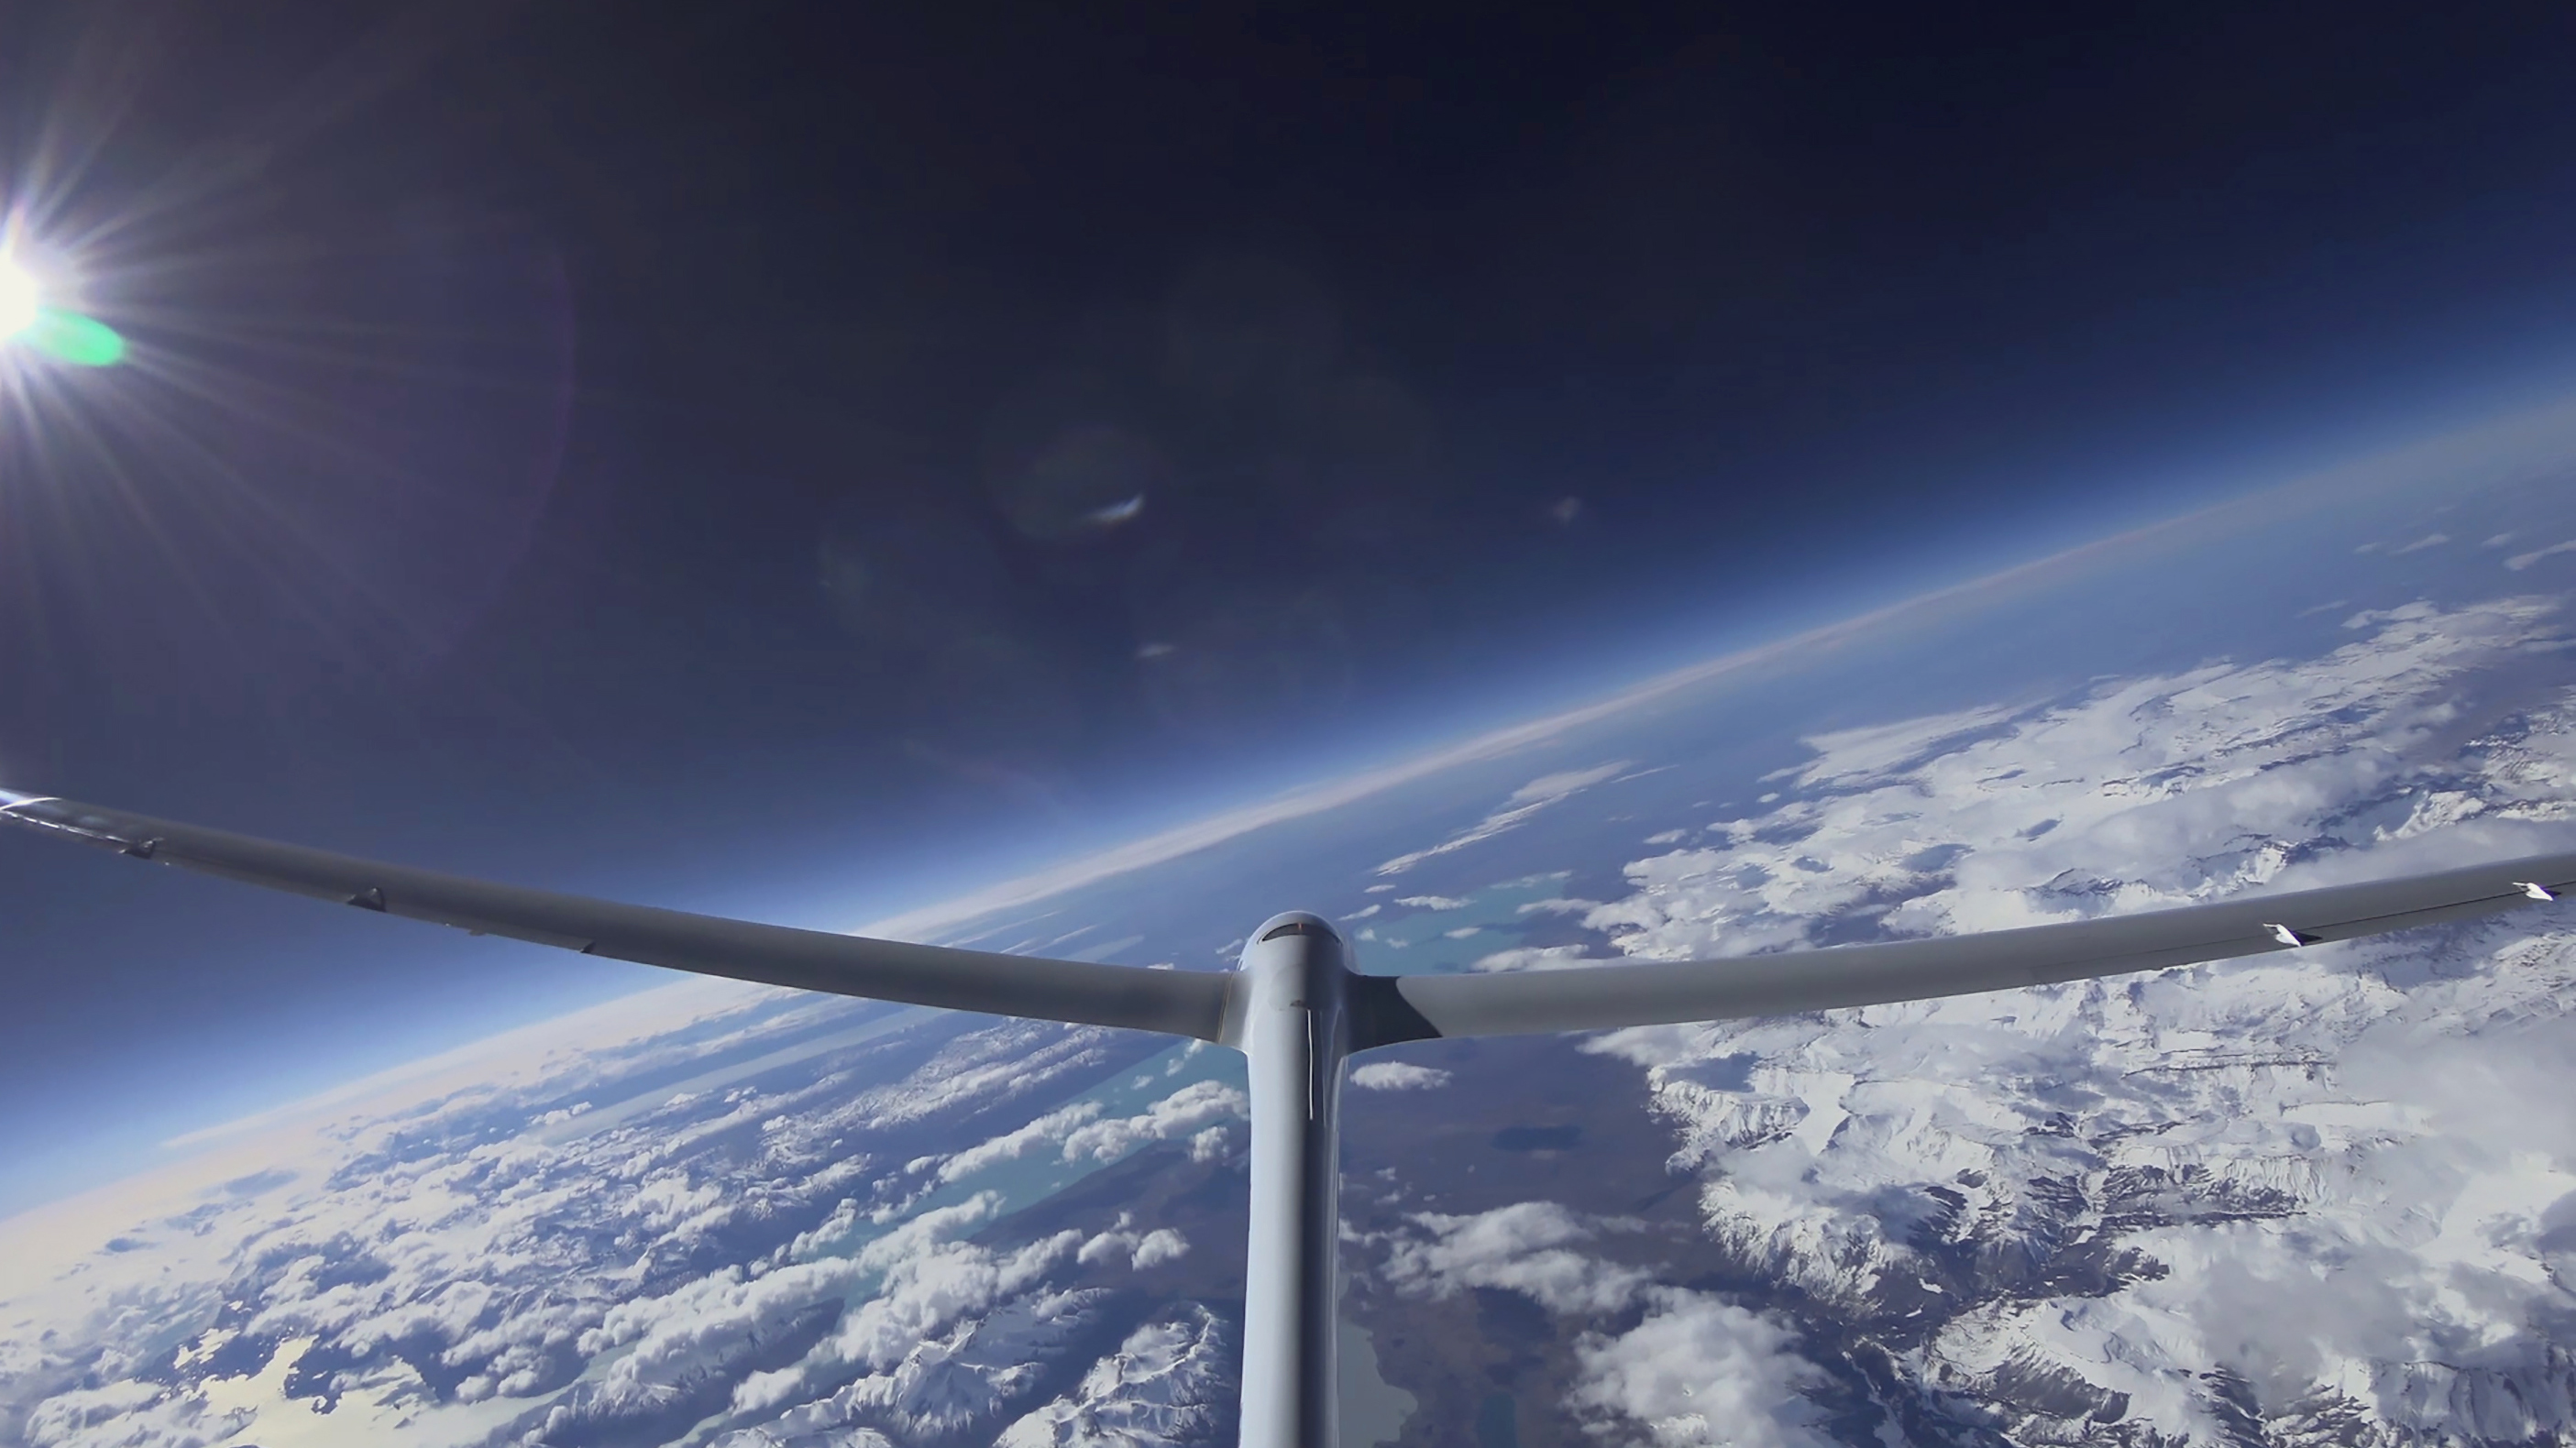 Airbus Perlan 2 glider space world record